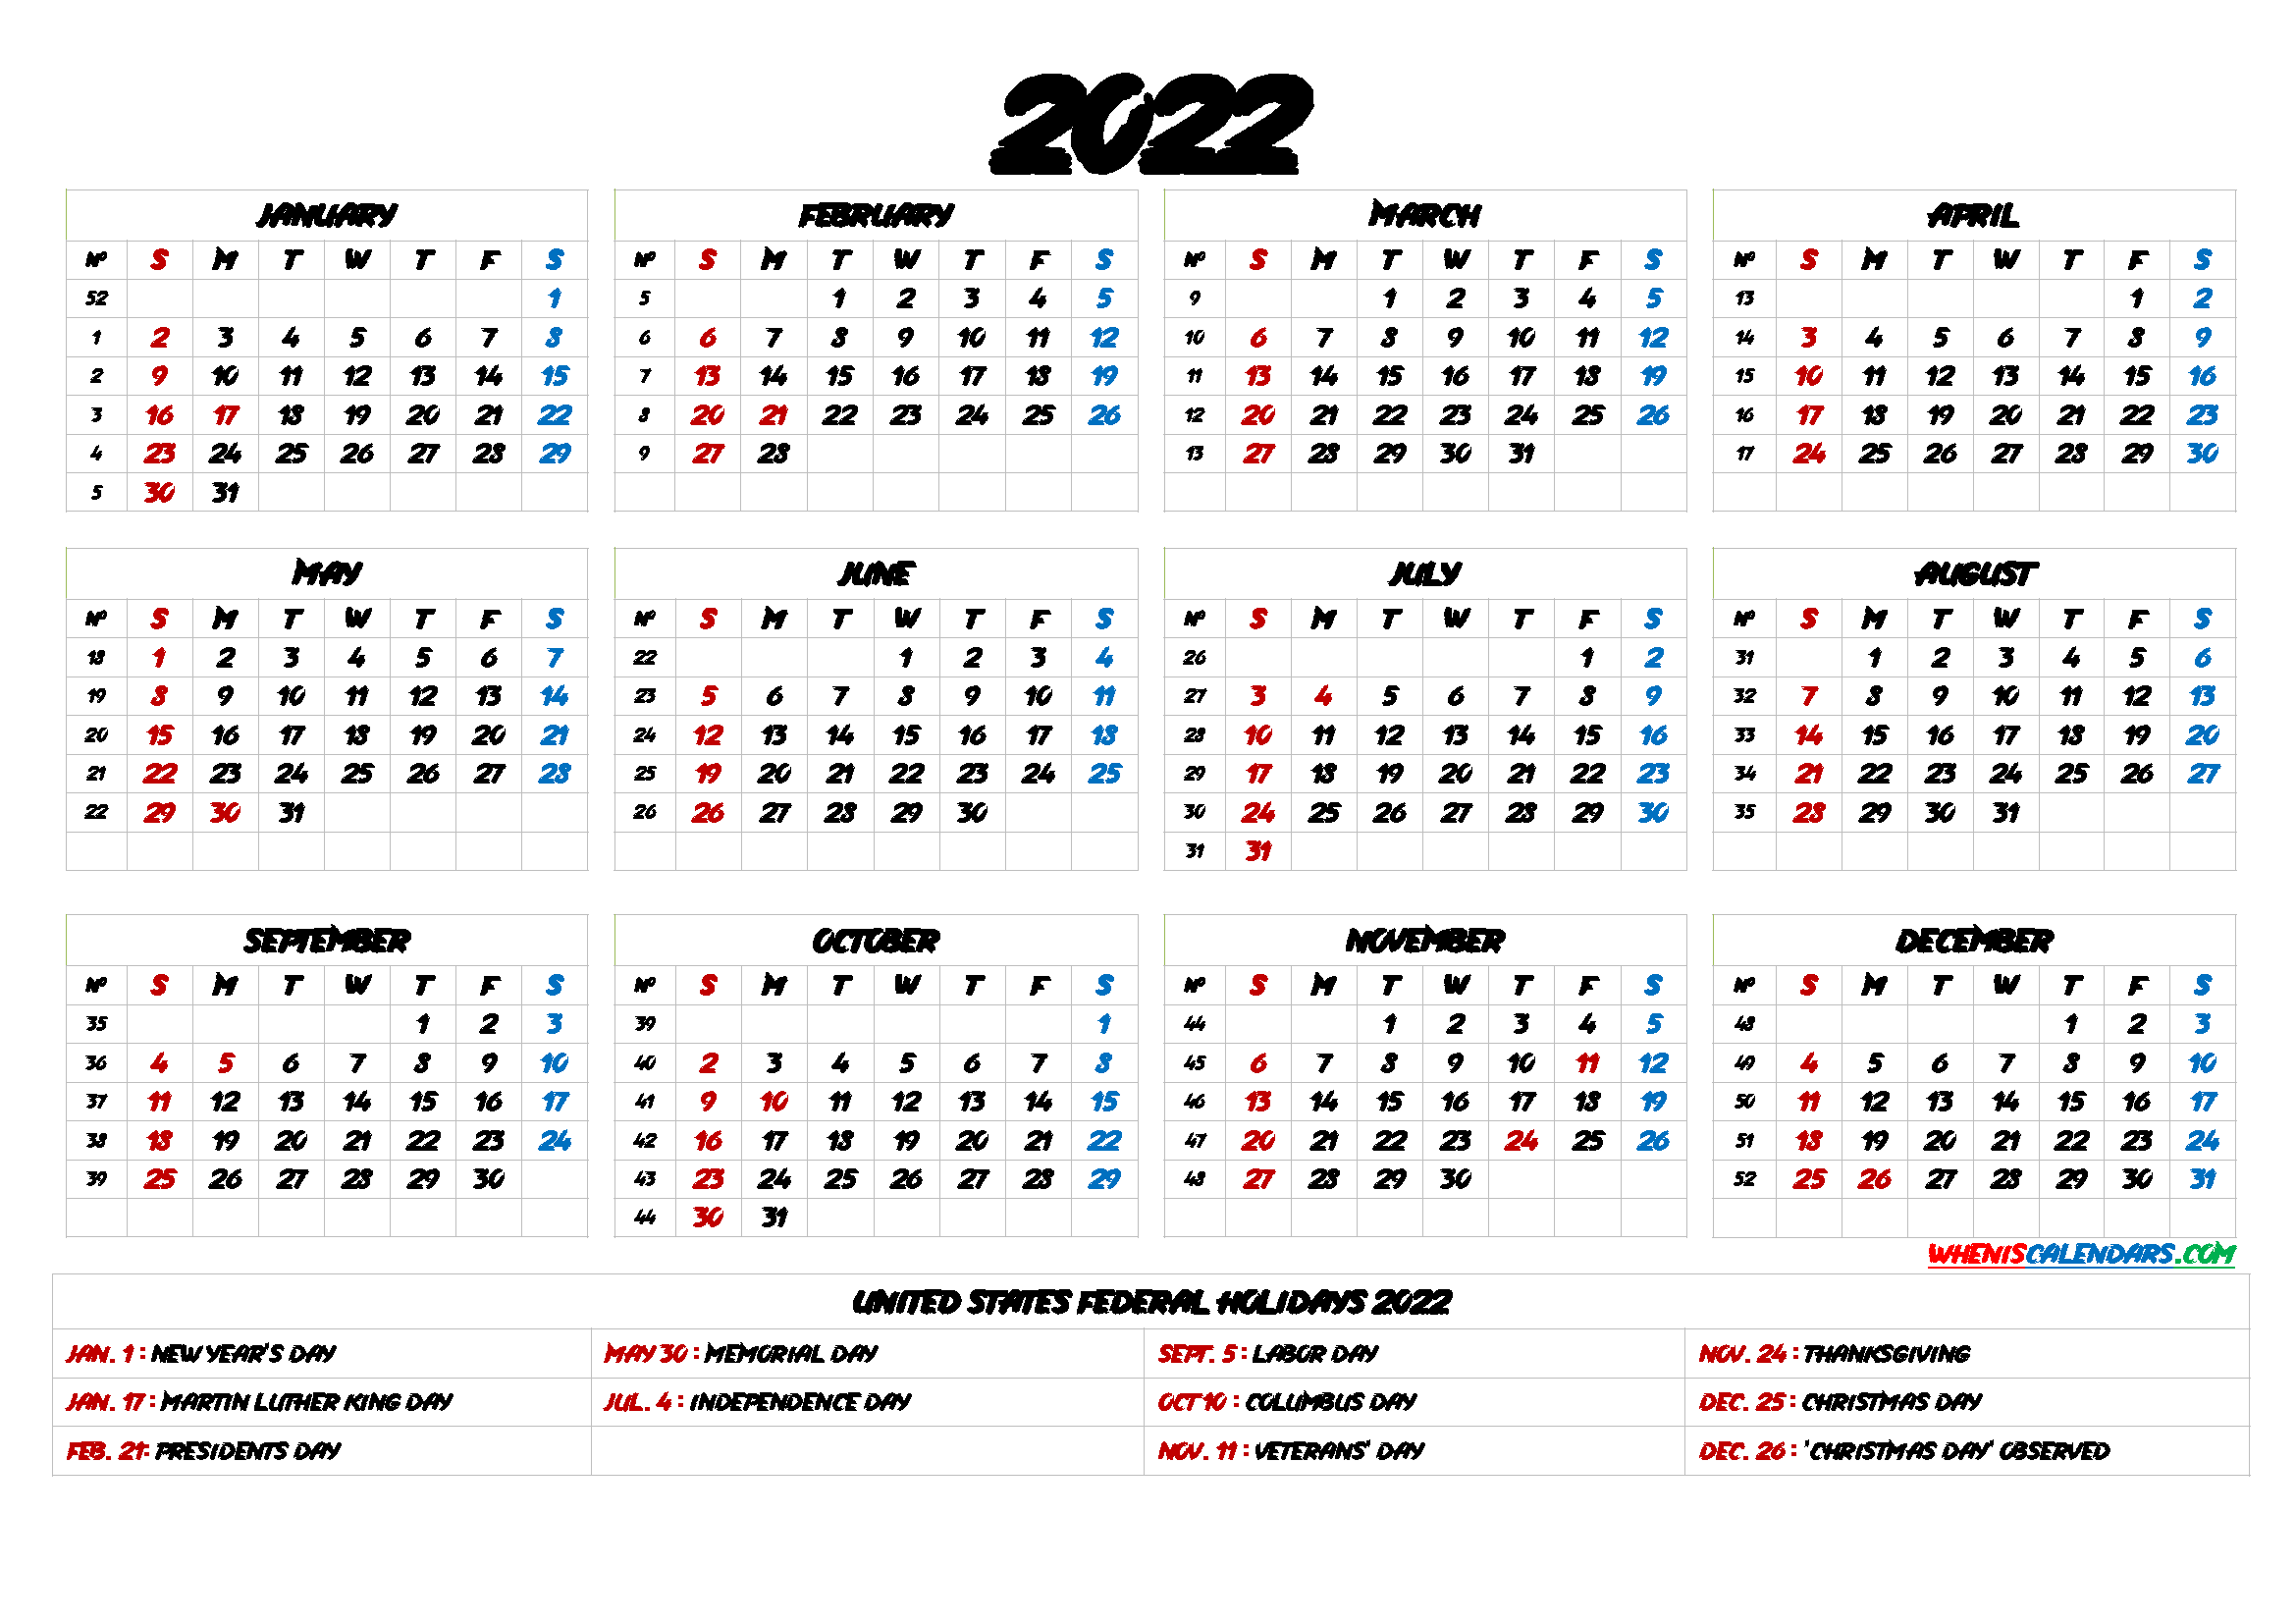 One Year Calendar 2022.Free Printable 2022 Yearly Calendar With Holidays 6 Templates Templates Printable Free Calendar Printables Printable Calendar